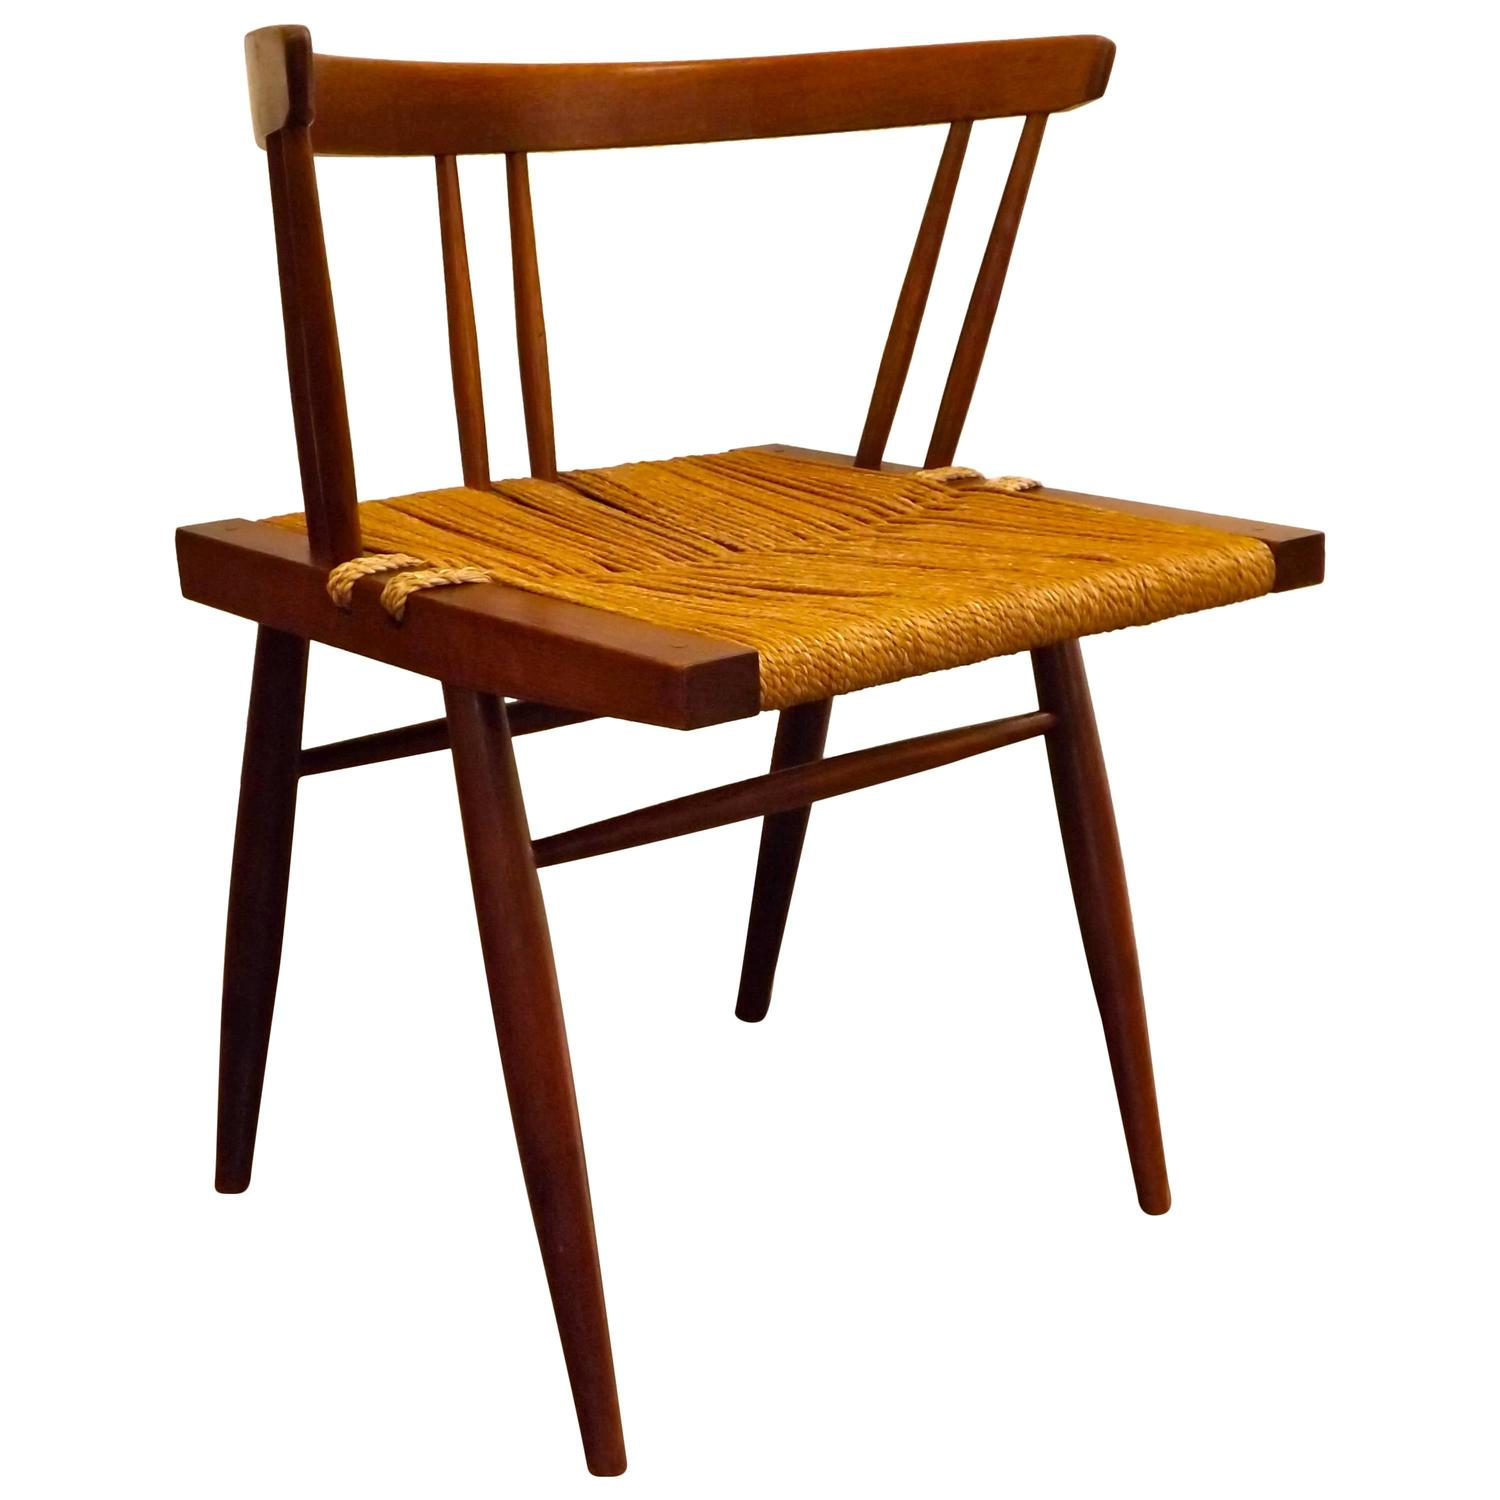 George Nakashima Grass Seat Chair For Sale At 1stdibs